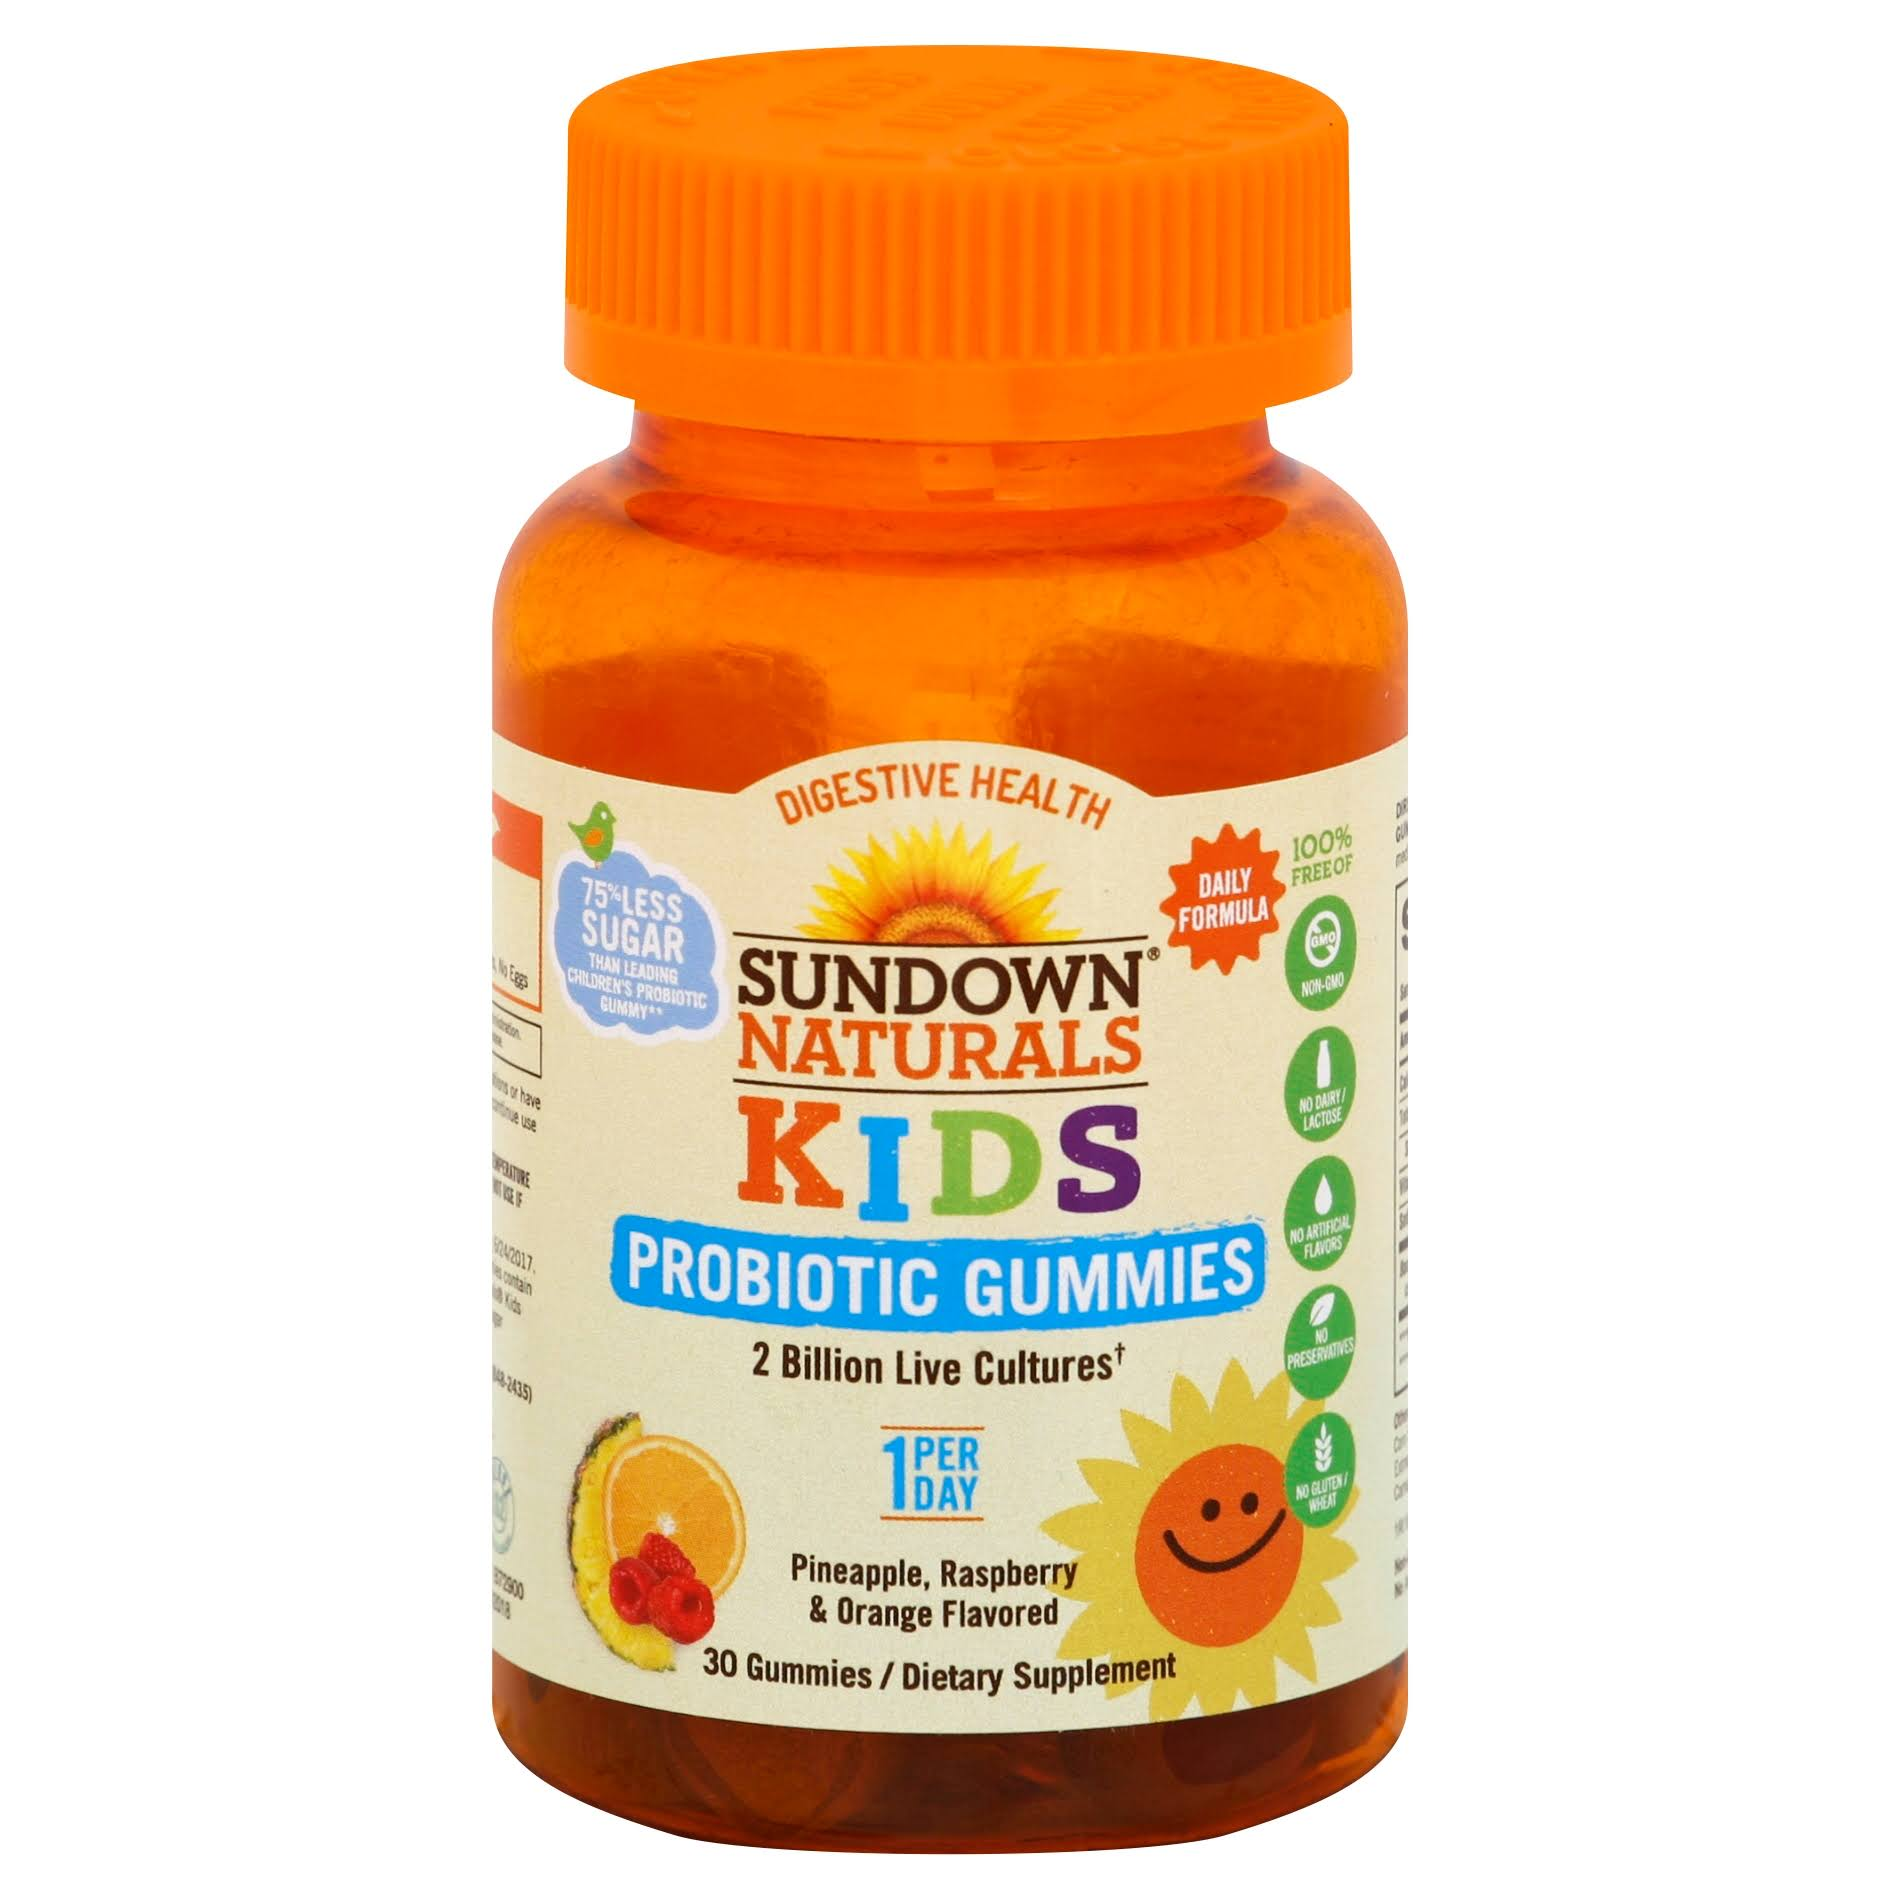 Sundown Naturals Kids Probiotic, Gummies - 30 gummies